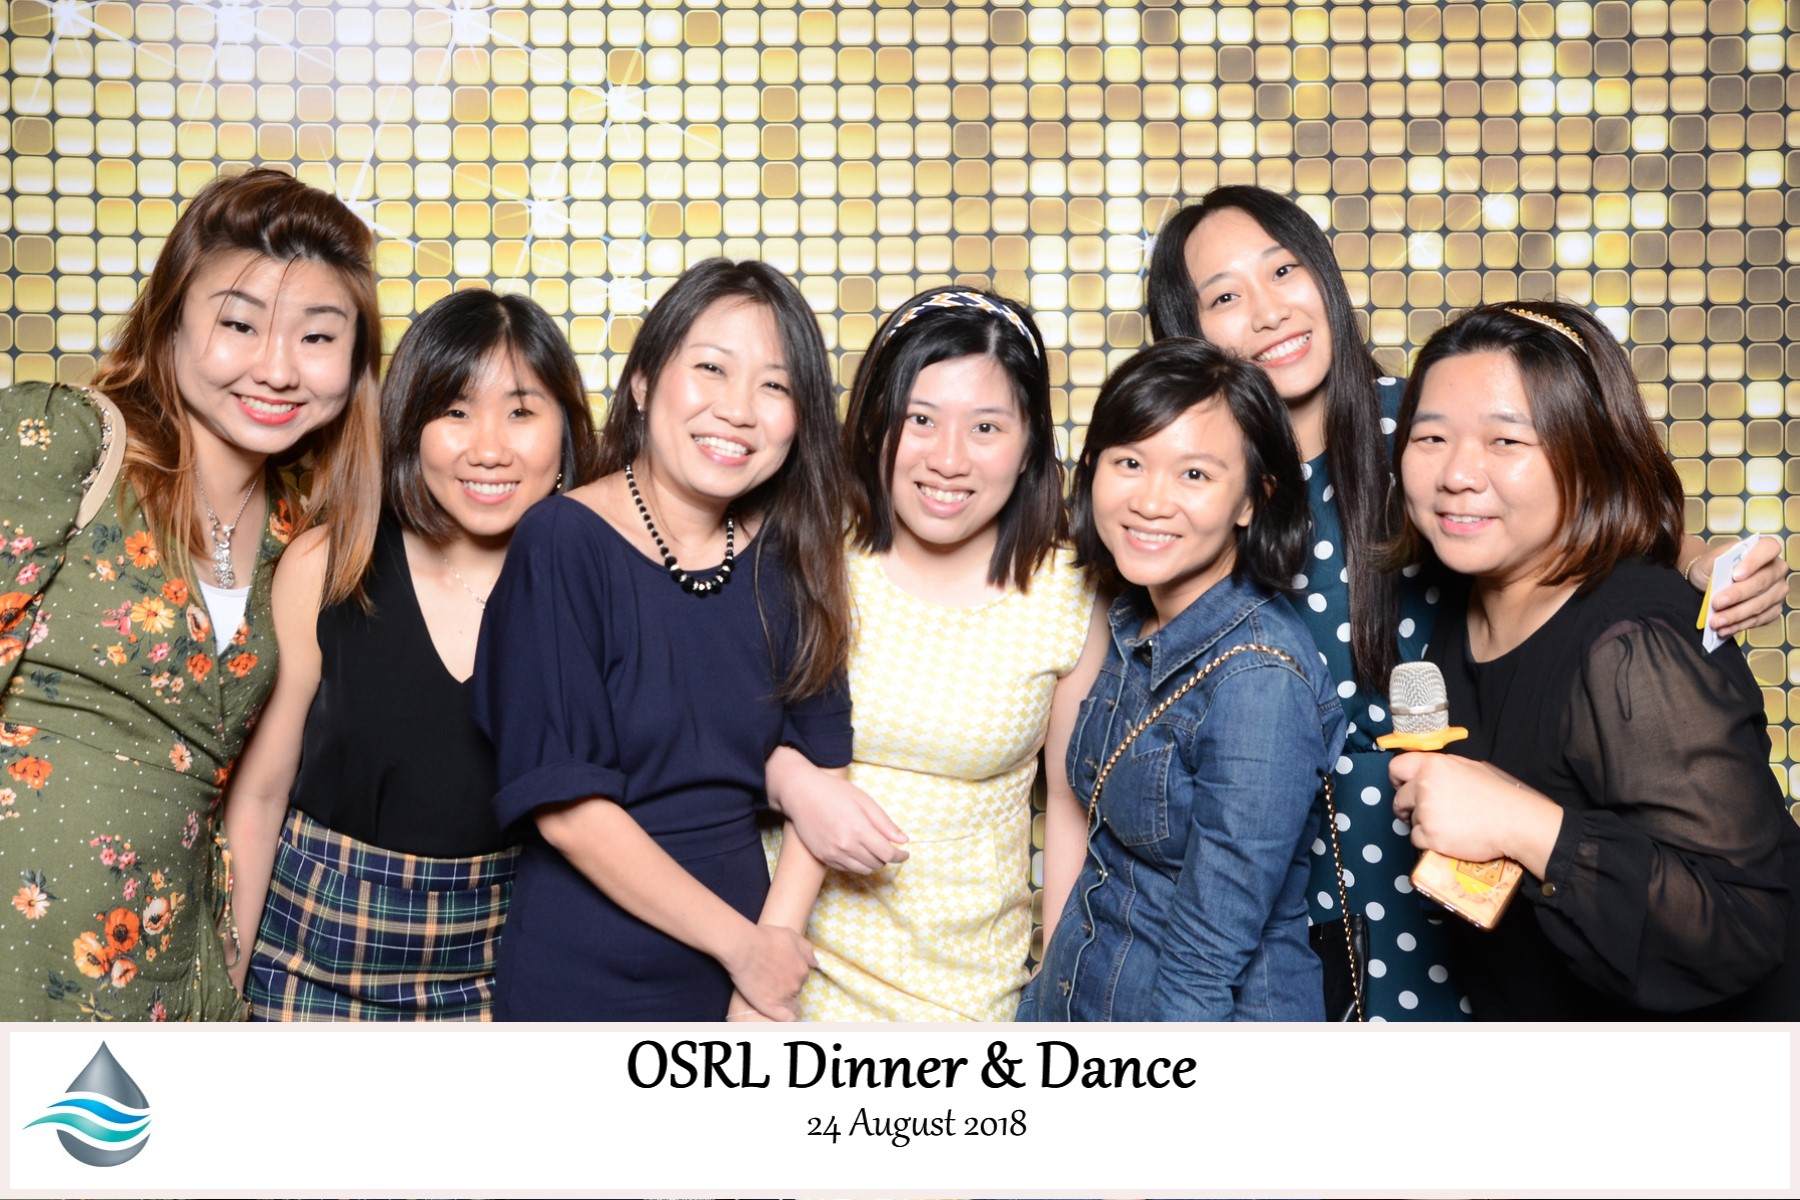 Photobooth for OSLR Dinner & Dance 24 August 2018